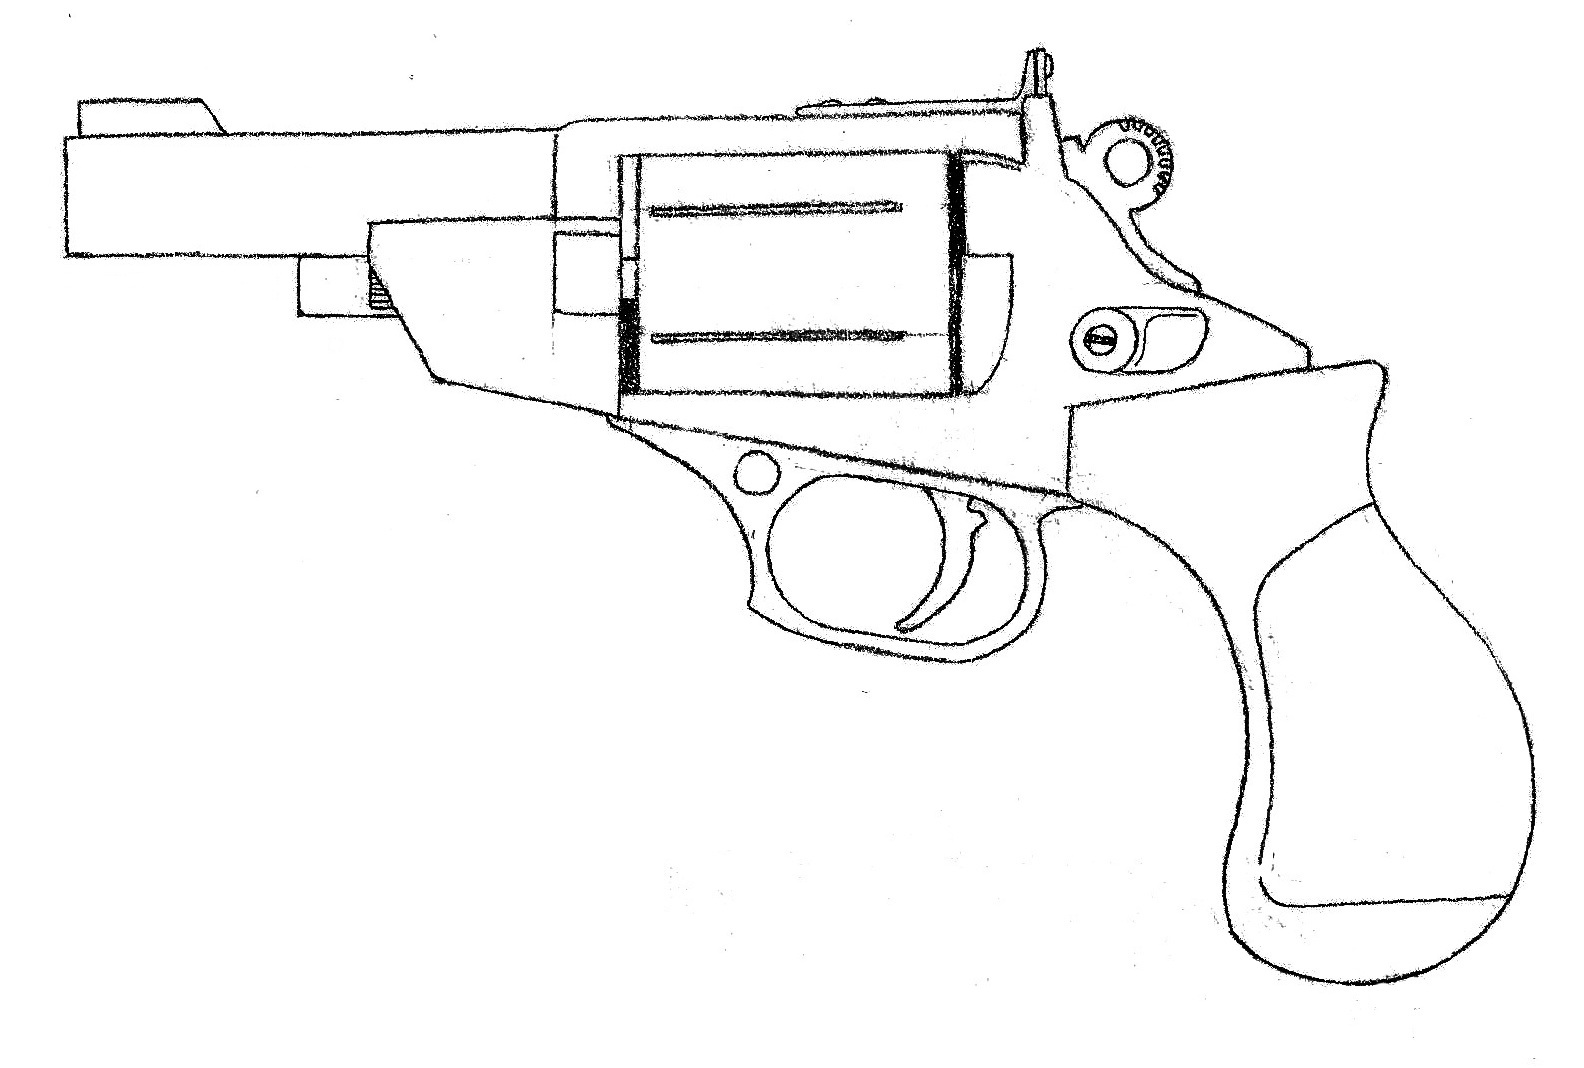 The Best Free Ruger Drawing Images Download From 14 Free